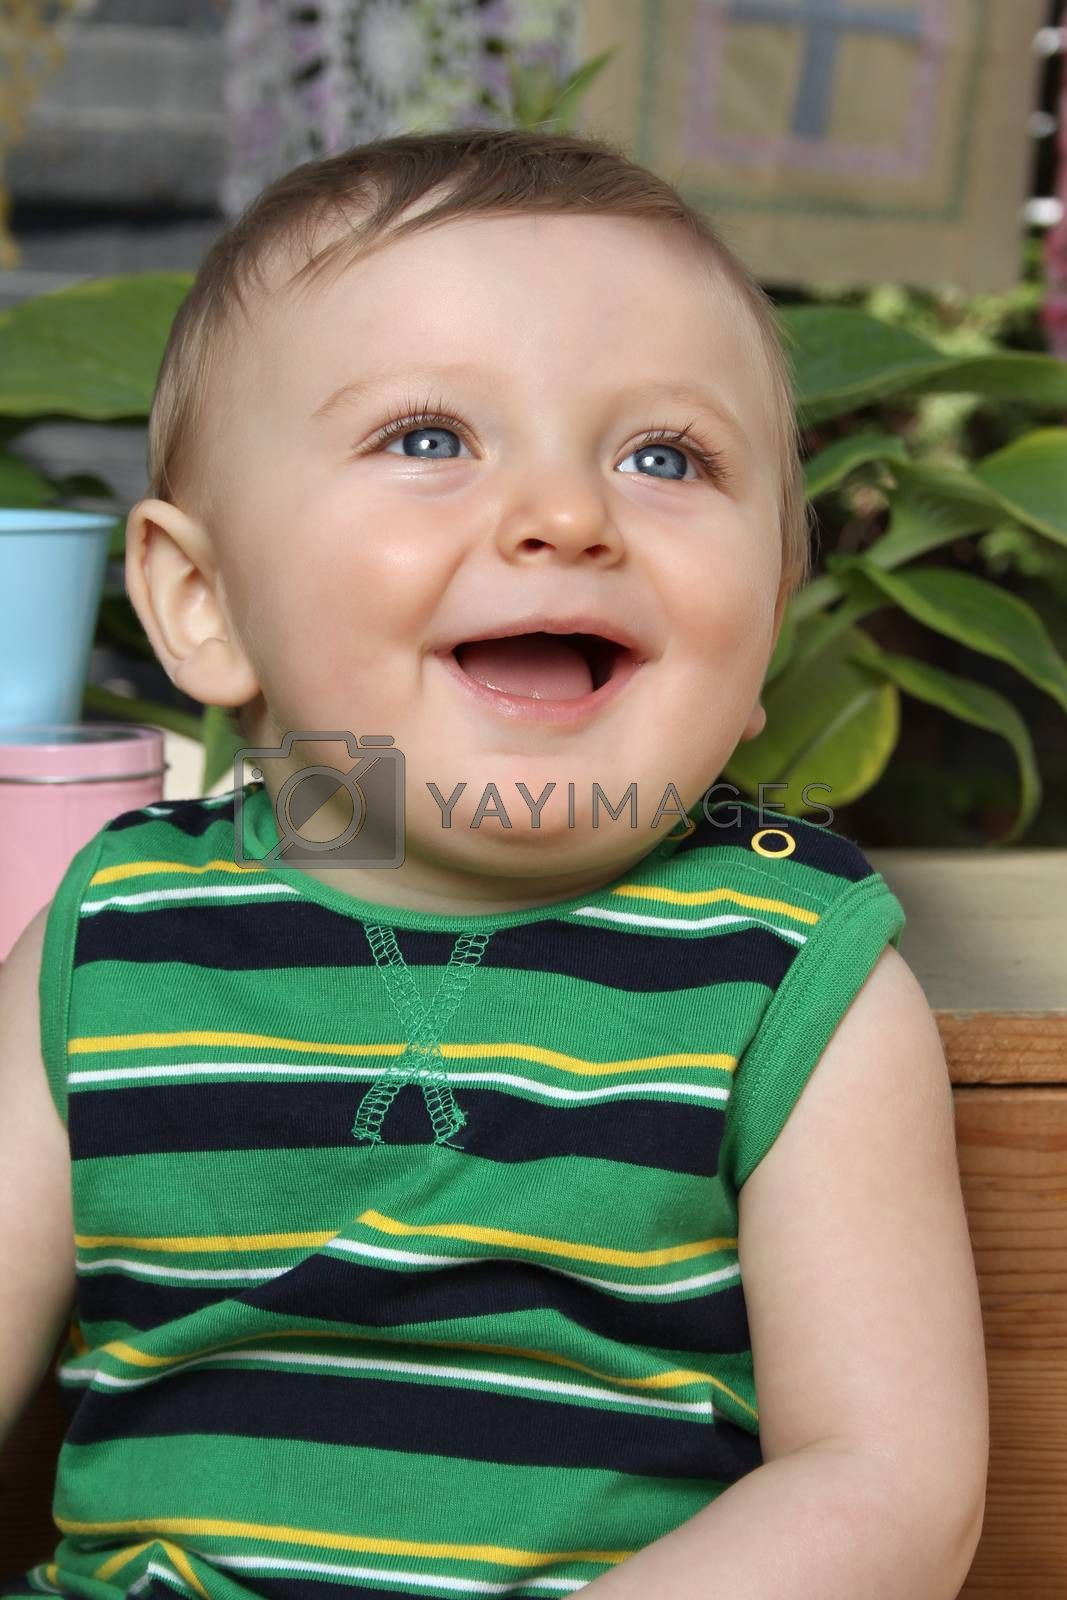 Cute baby boy outside in the garden wearing green outfit